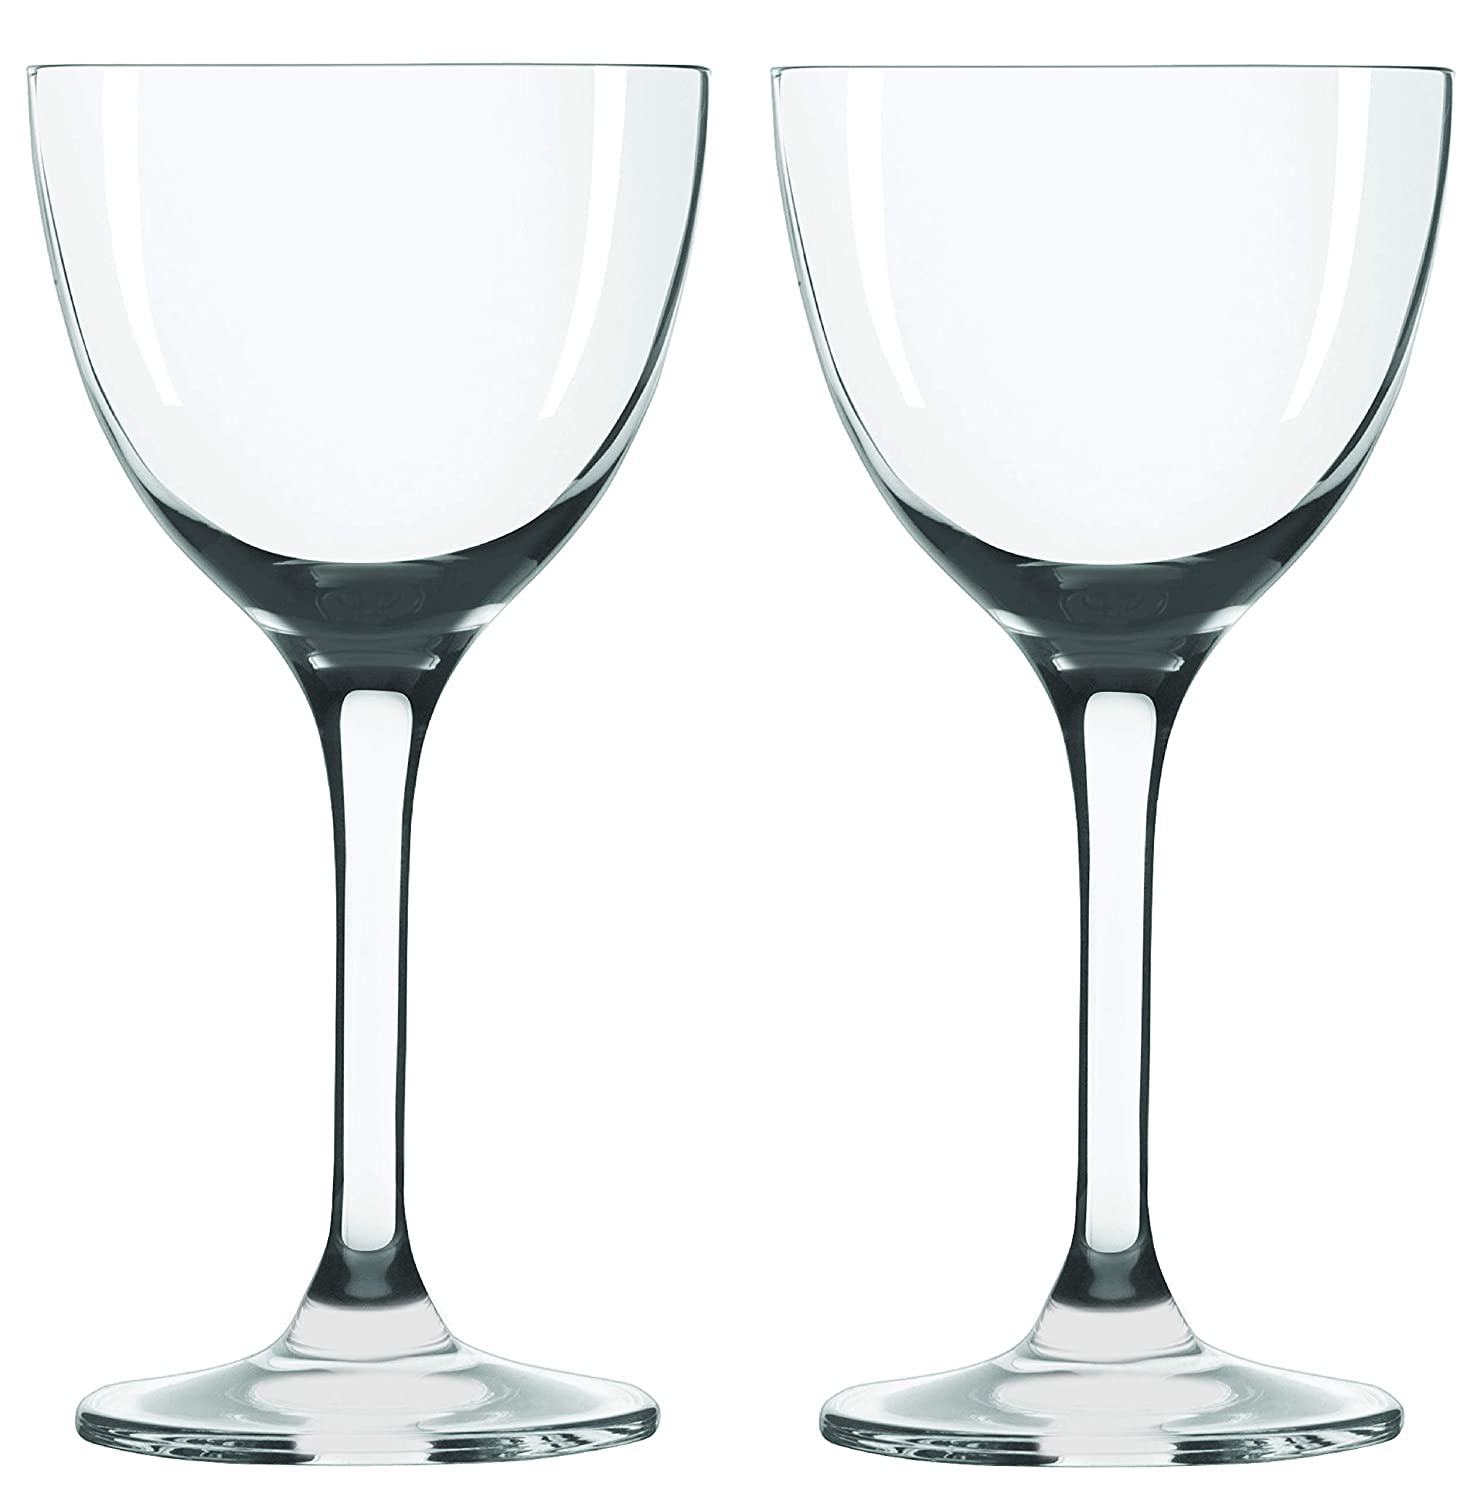 Liquor and Spirit Tastings Port Wine Aperitif Set of 2 for Bar Serving Martini Algonquin Straight Up 5oz Manhattan Gin Drinks Nick /& Nora Cocktail Glasses Small Plain Vintage Coupe Glass